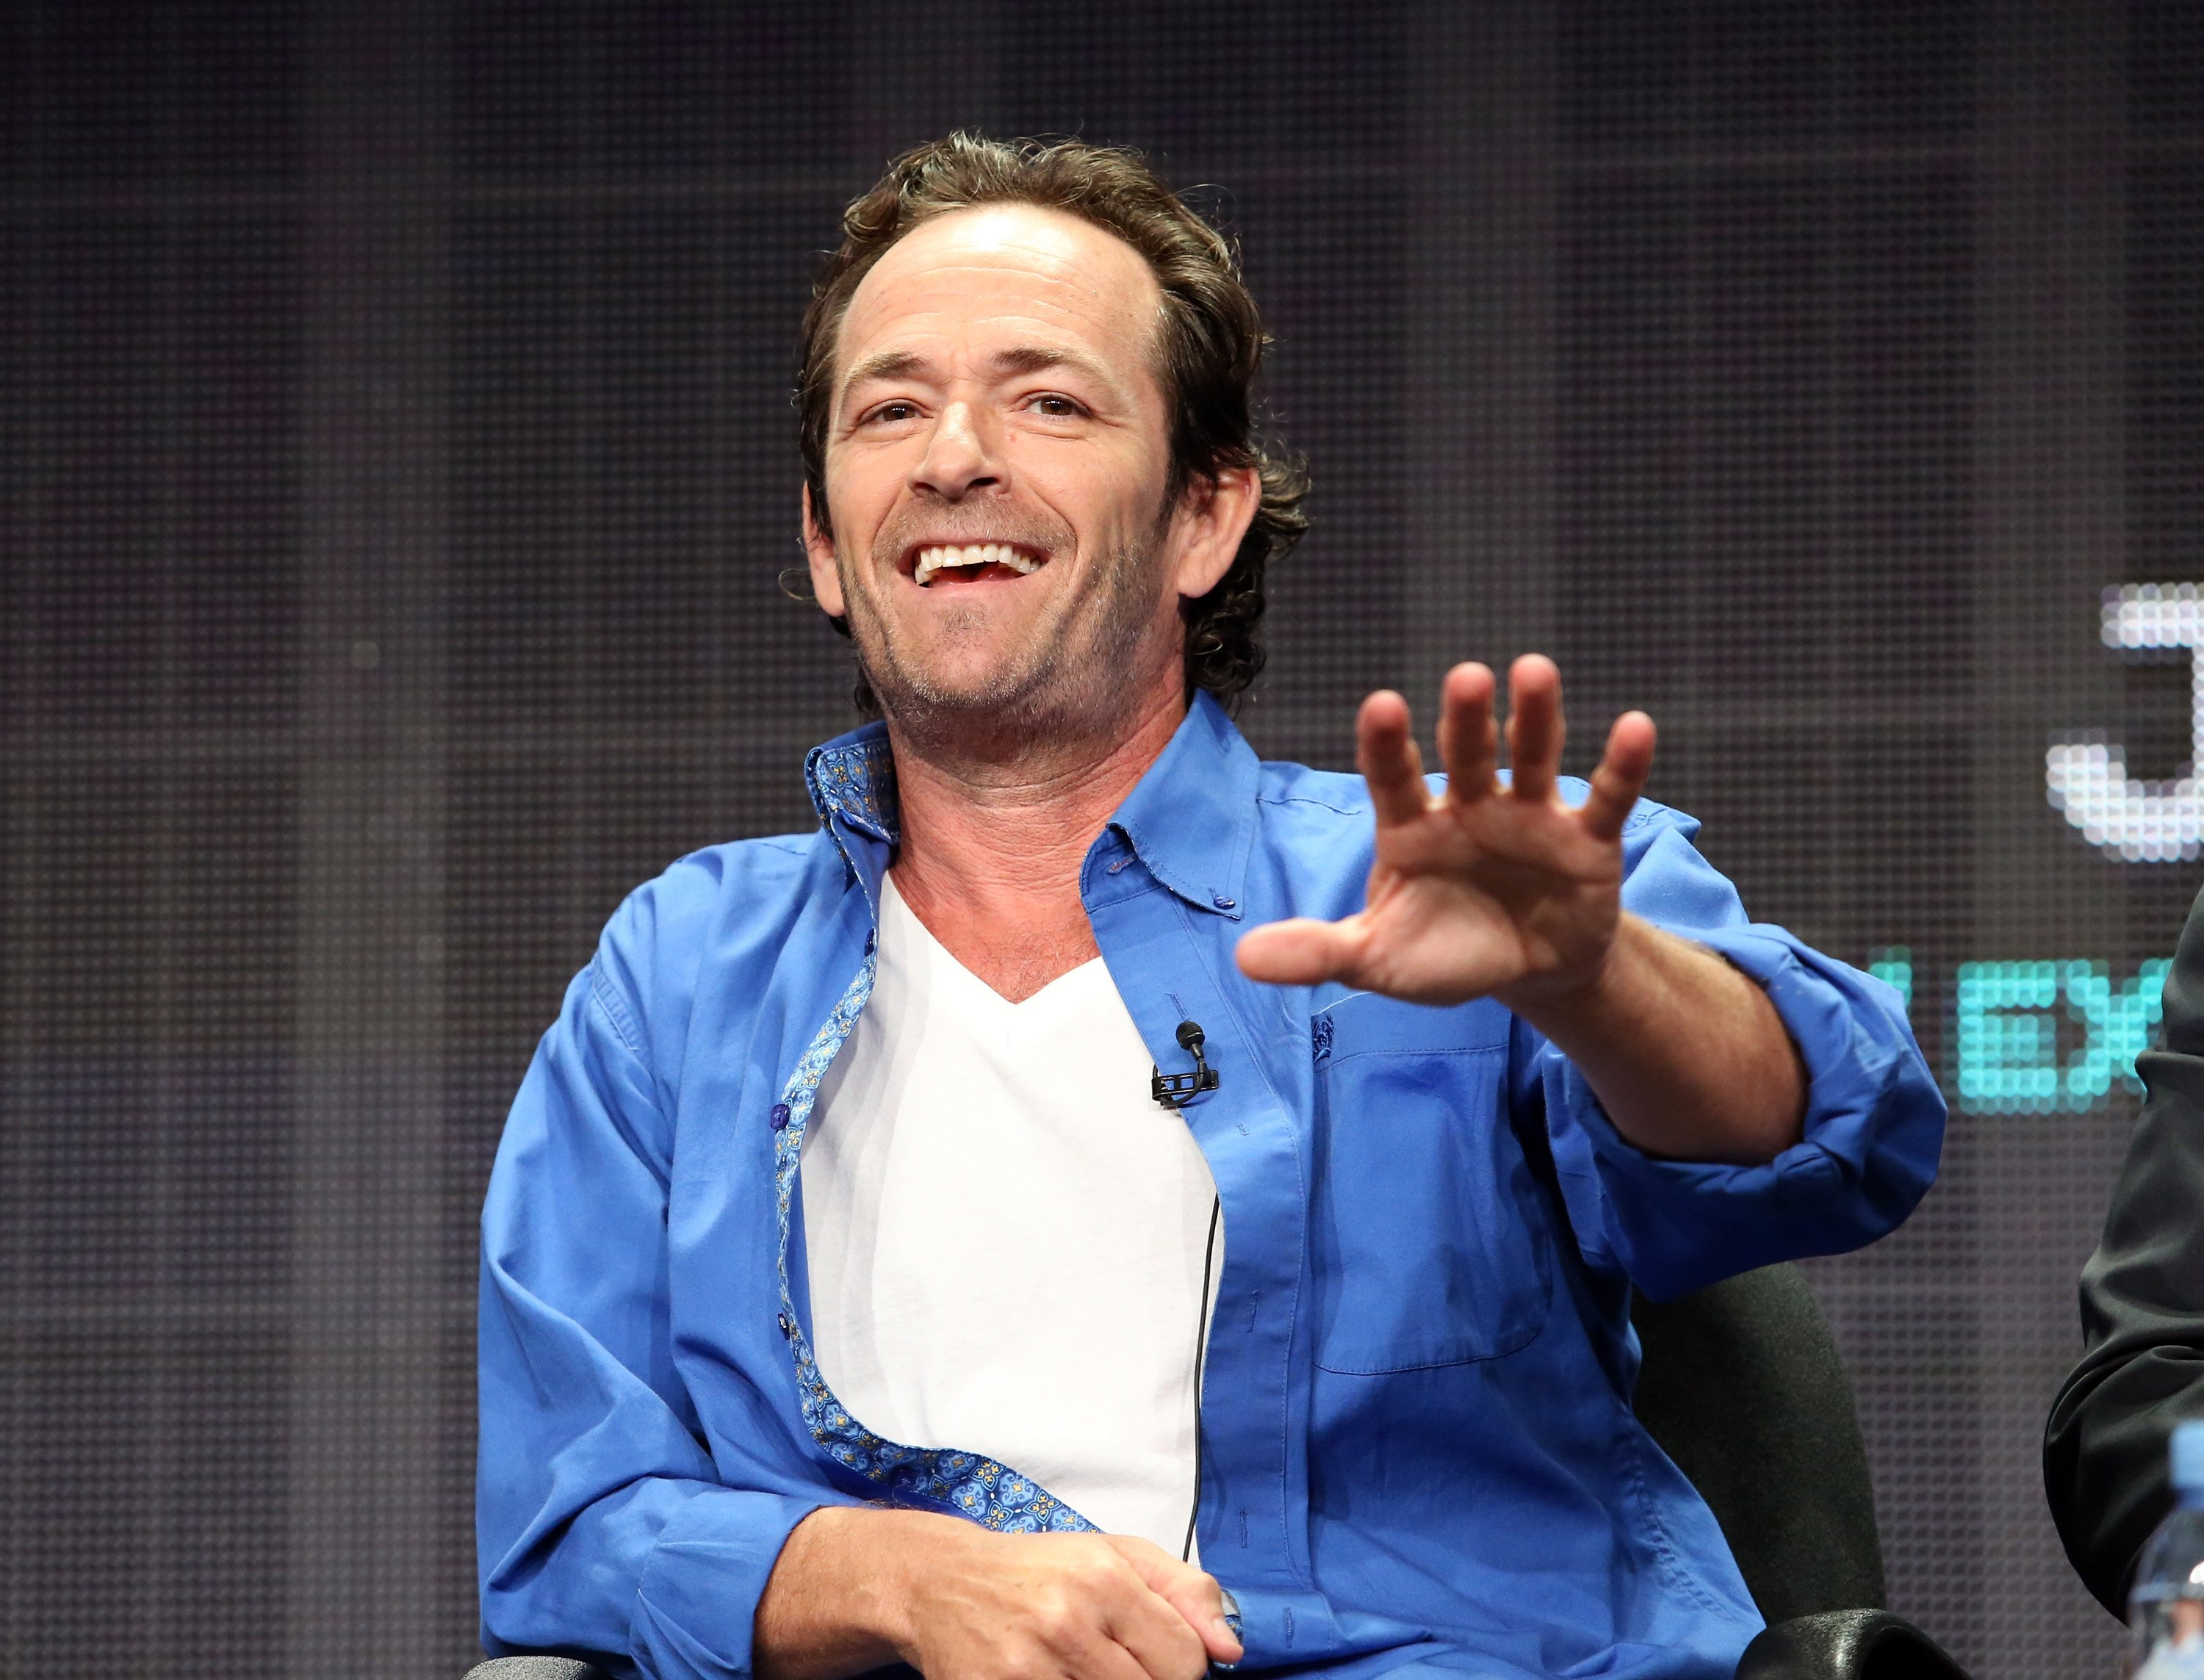 Luke Perry onstage during the 'Welcome Home' panel discussion at the UP Entertainment The Beverly Hilton Hotel in 2015. Image credit: Getty Images/Global Images Ukraine